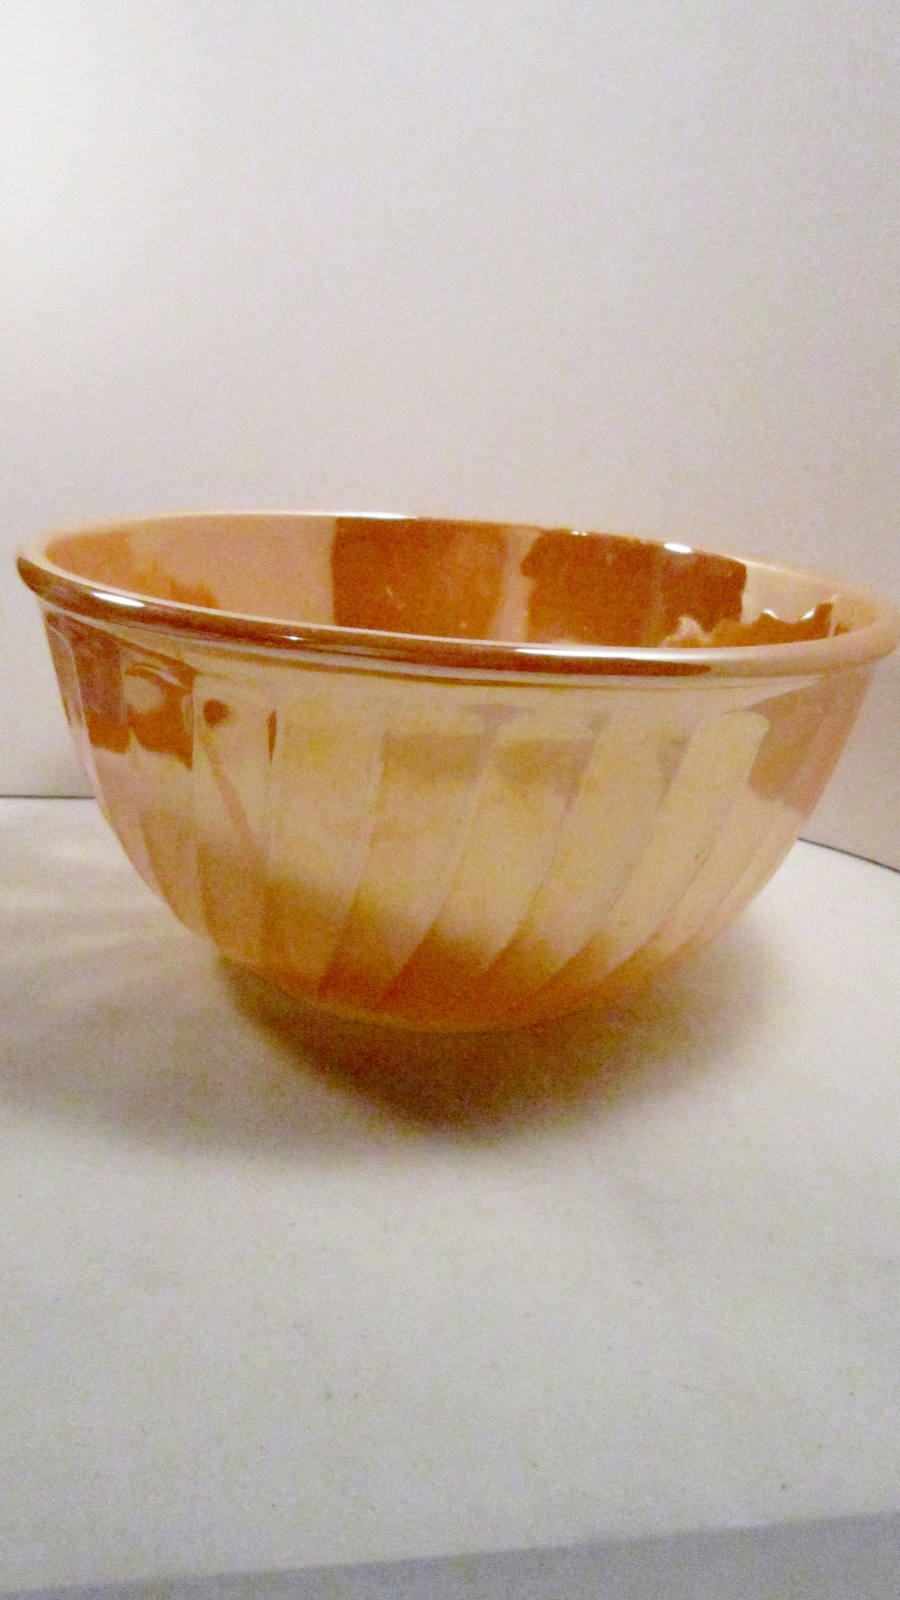 Fire King Mixing Bowl Peach Lustre Large 9 inch Vintage 1950s